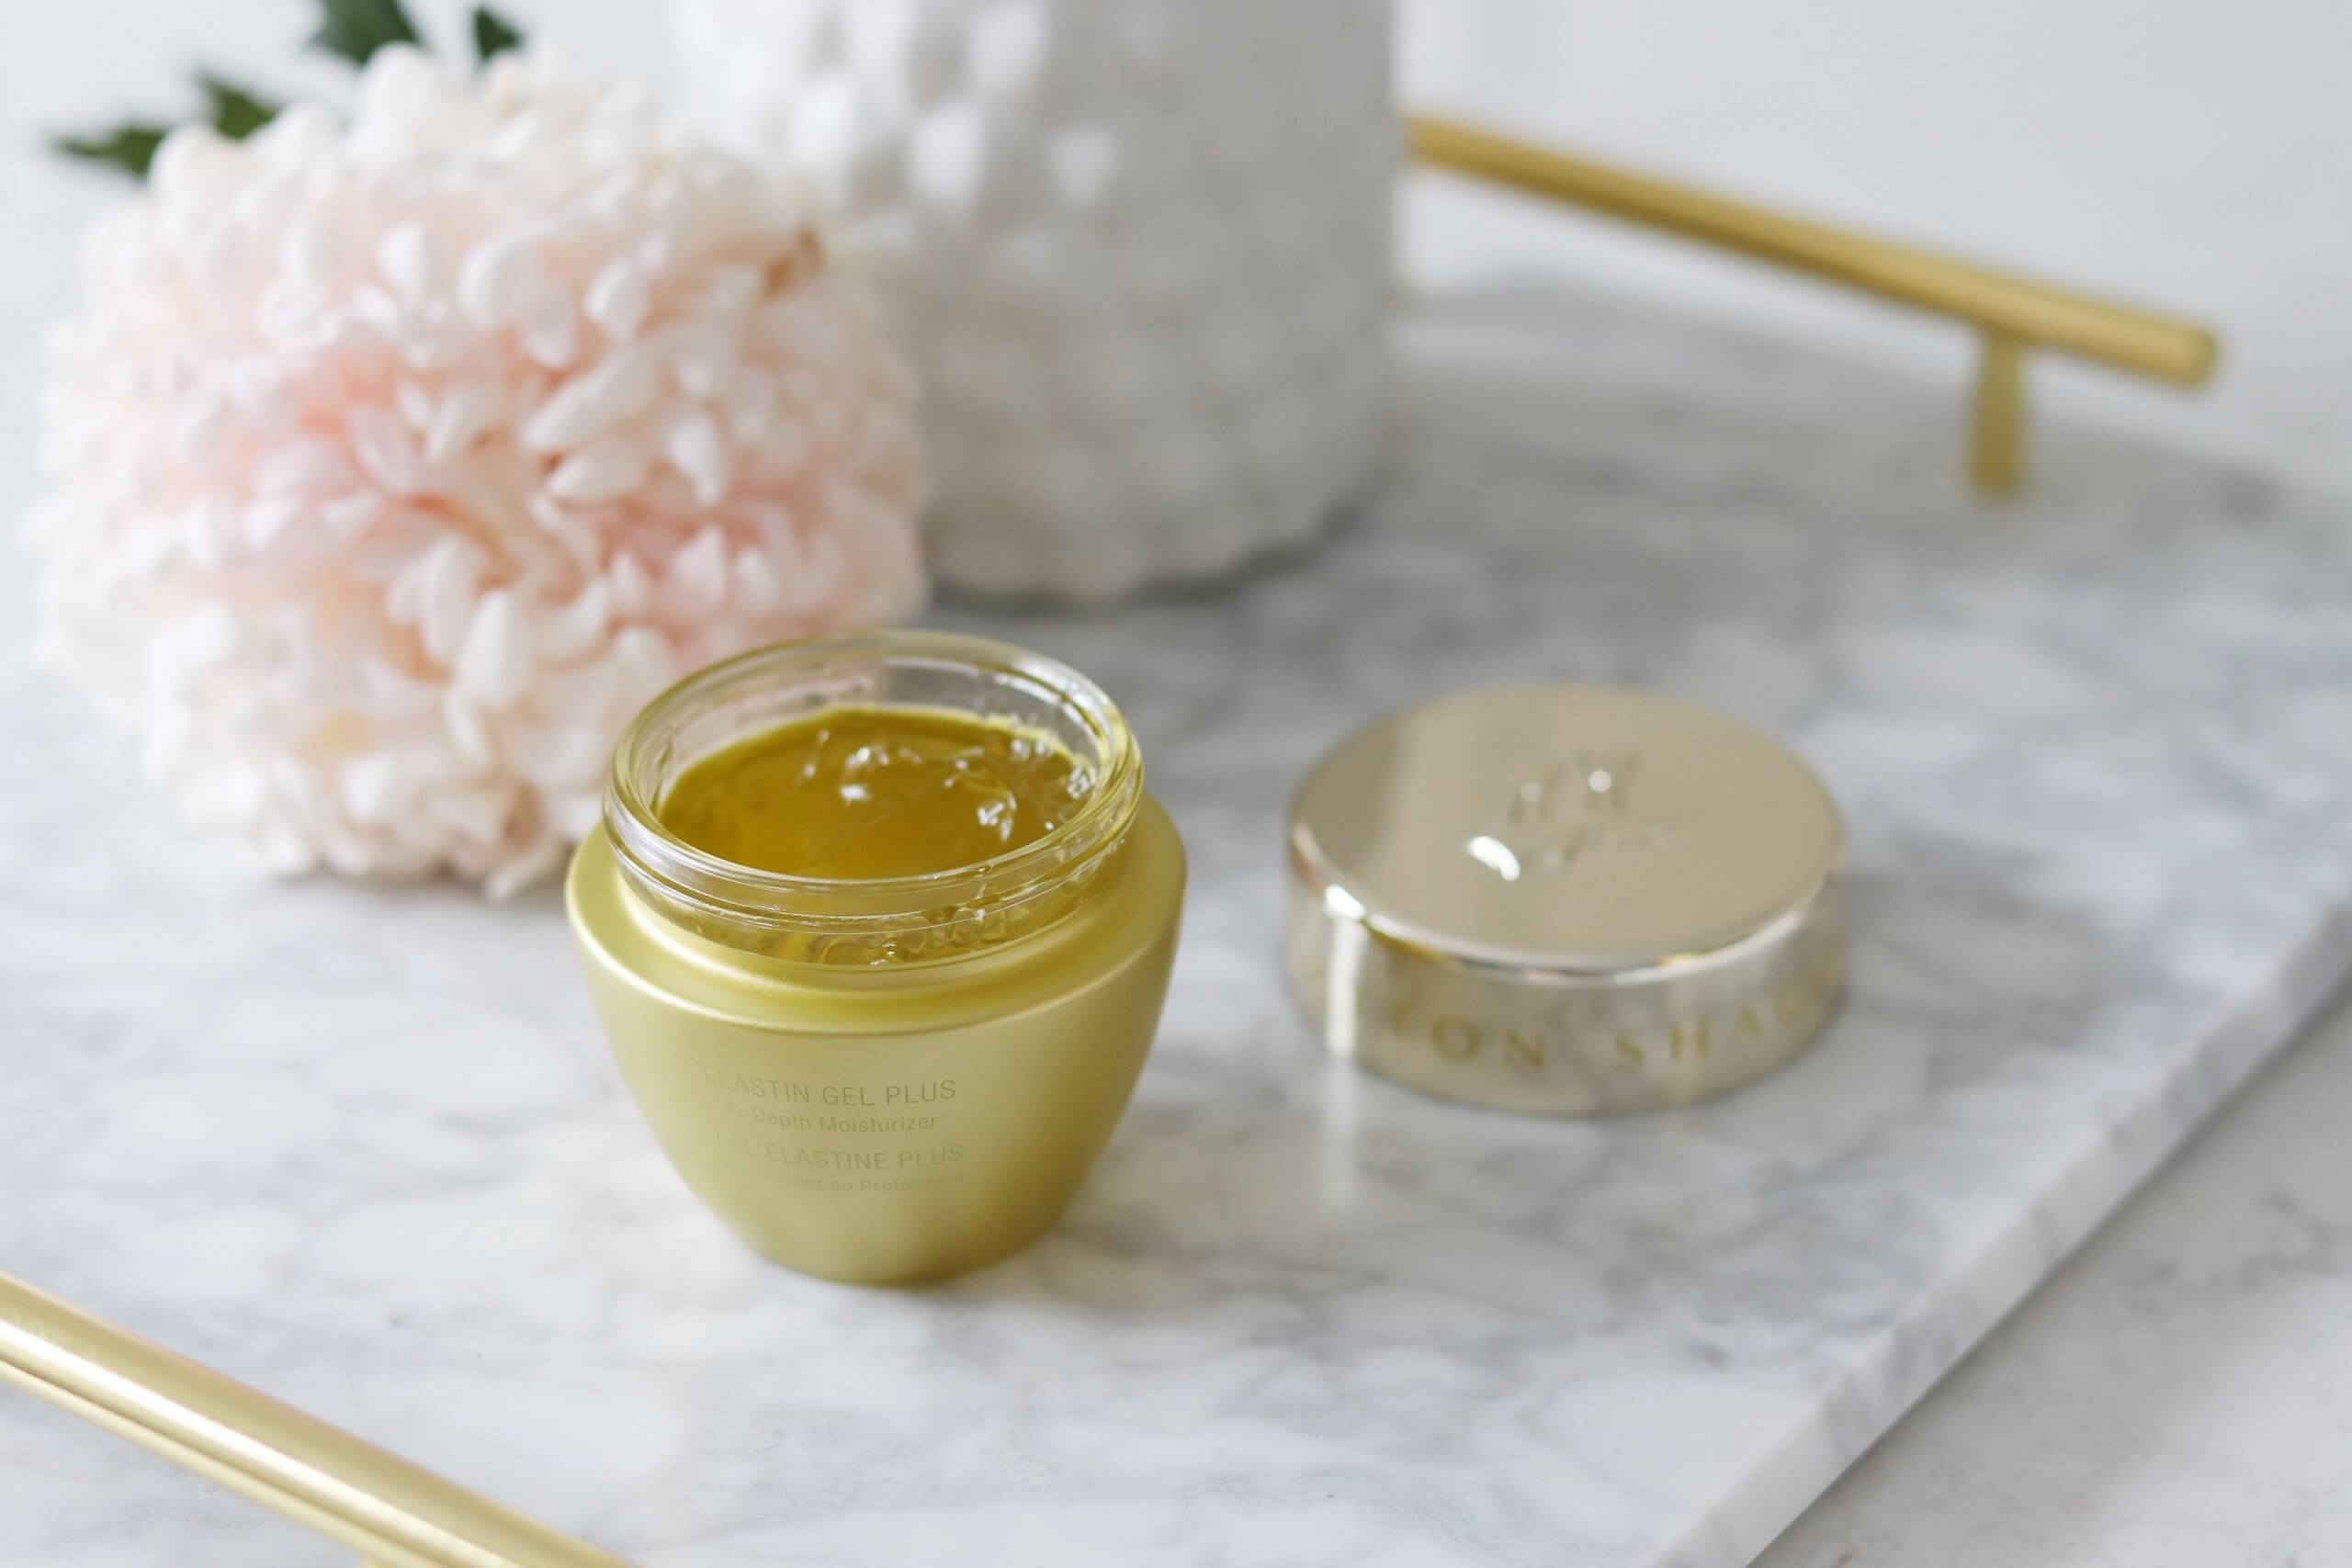 Canadian Skincare from La Maison Clayton Shagal Review